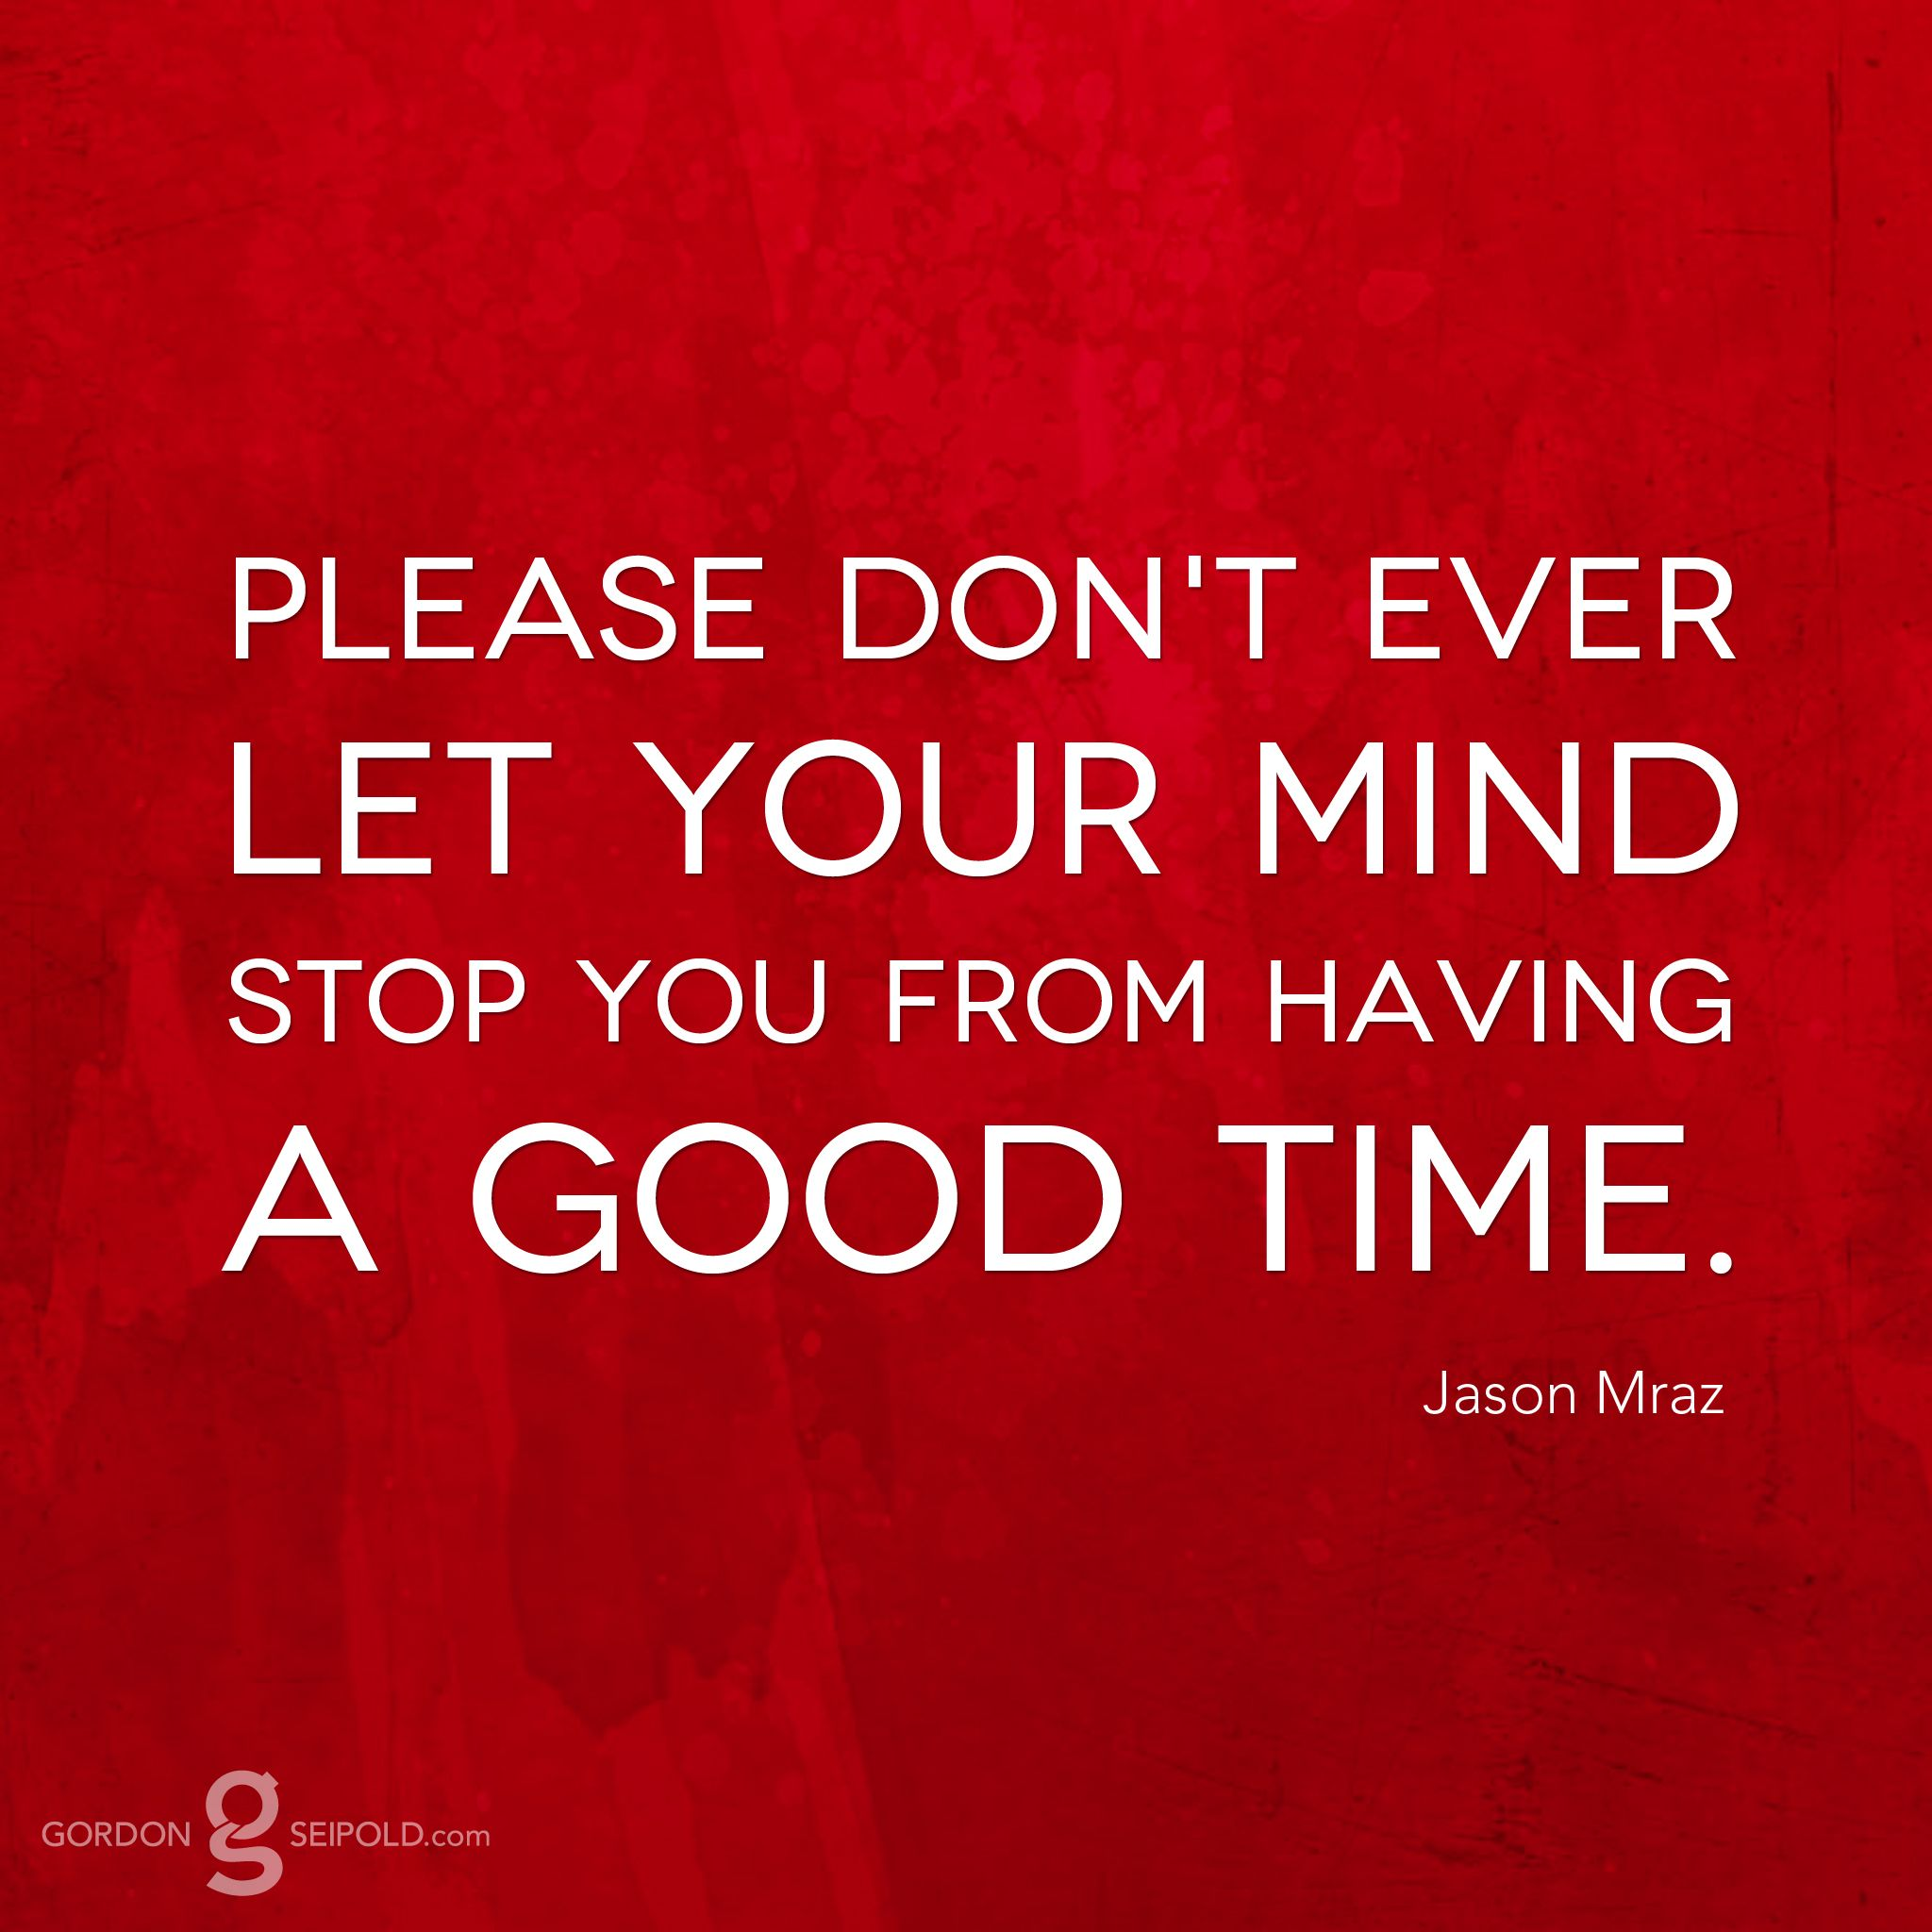 Please Don T Ever Let Your Mind Stop You From Having A Good Time Quote From Jason Mraz Good Times Quotes Great Quotes Favorite Quotes